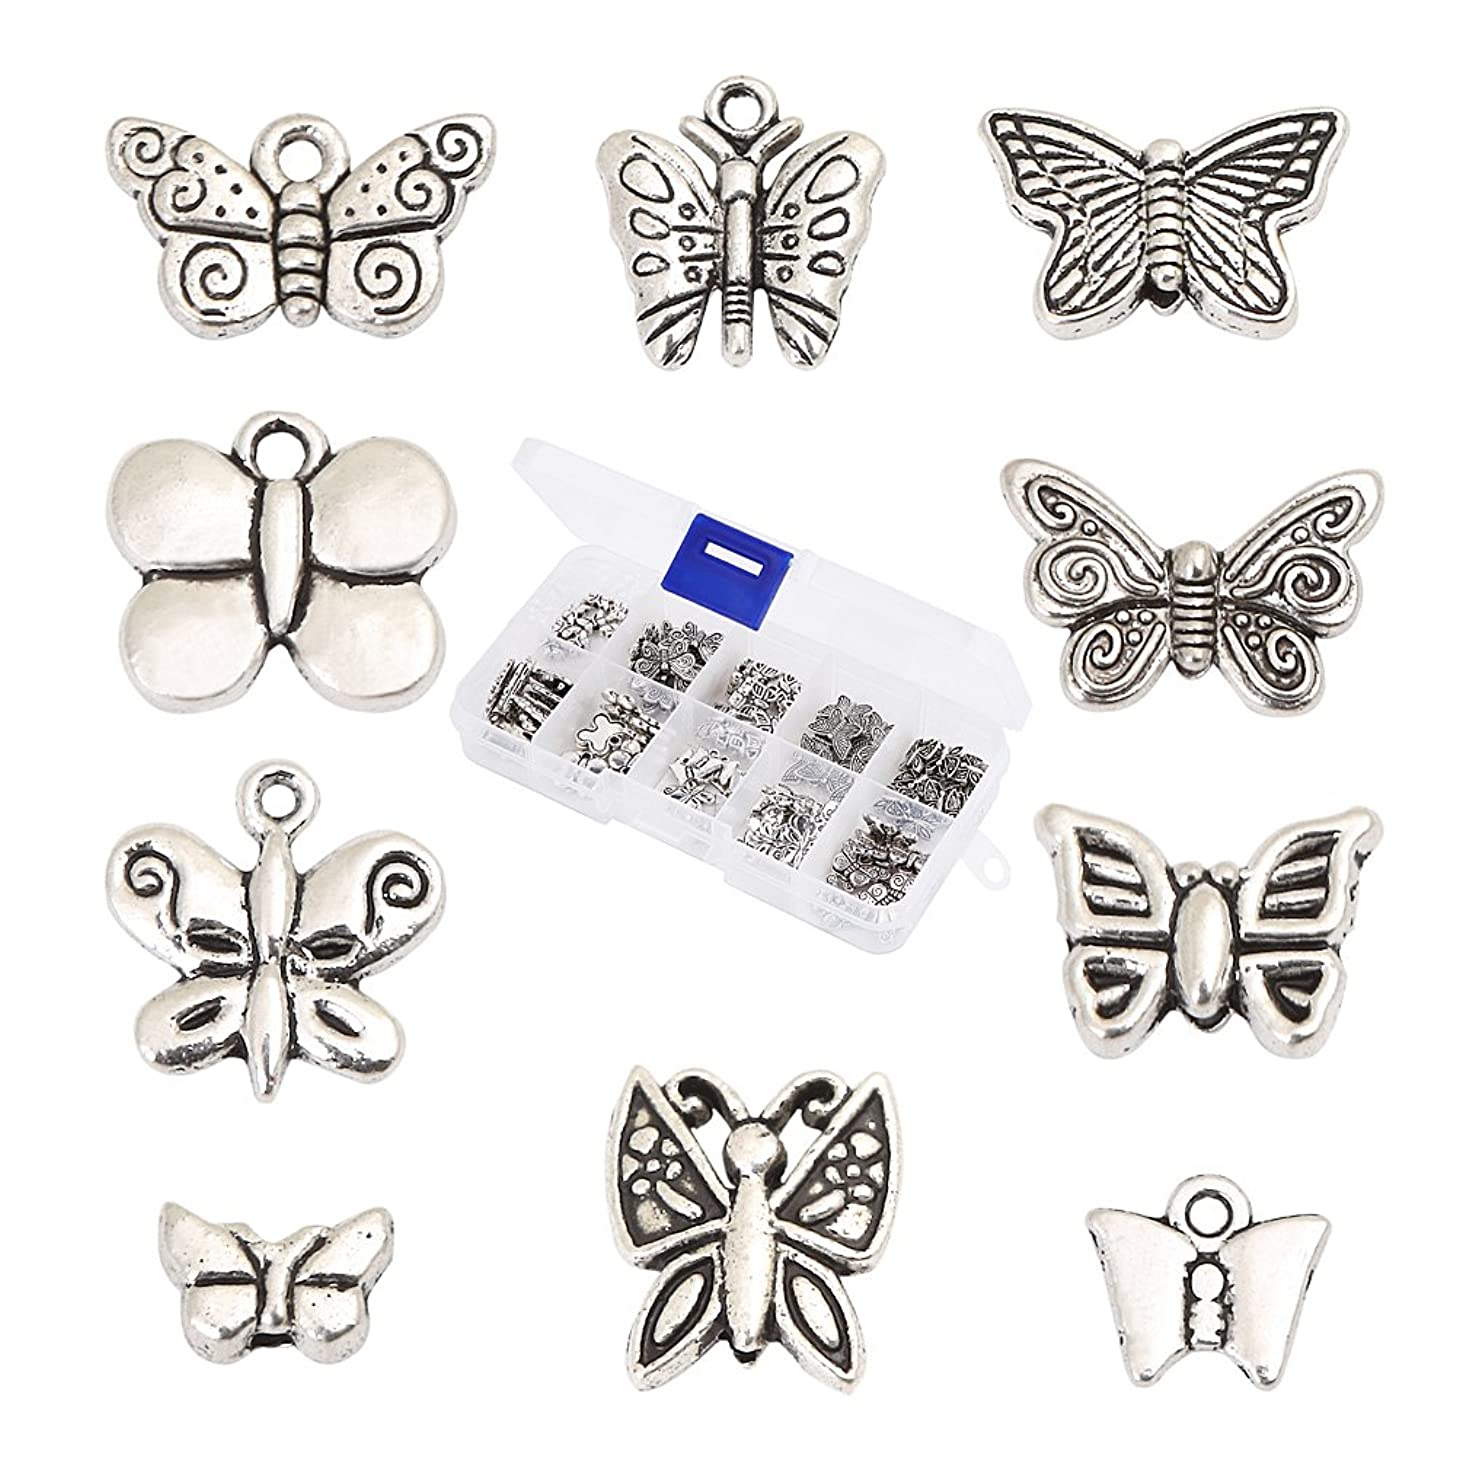 HYBEADS 100Pcs Assorted 10 Styles Tibetan Silver Butterfly Spacer Charm Beads for Jewelry Making Findings Value Pack Mix Lot with Container